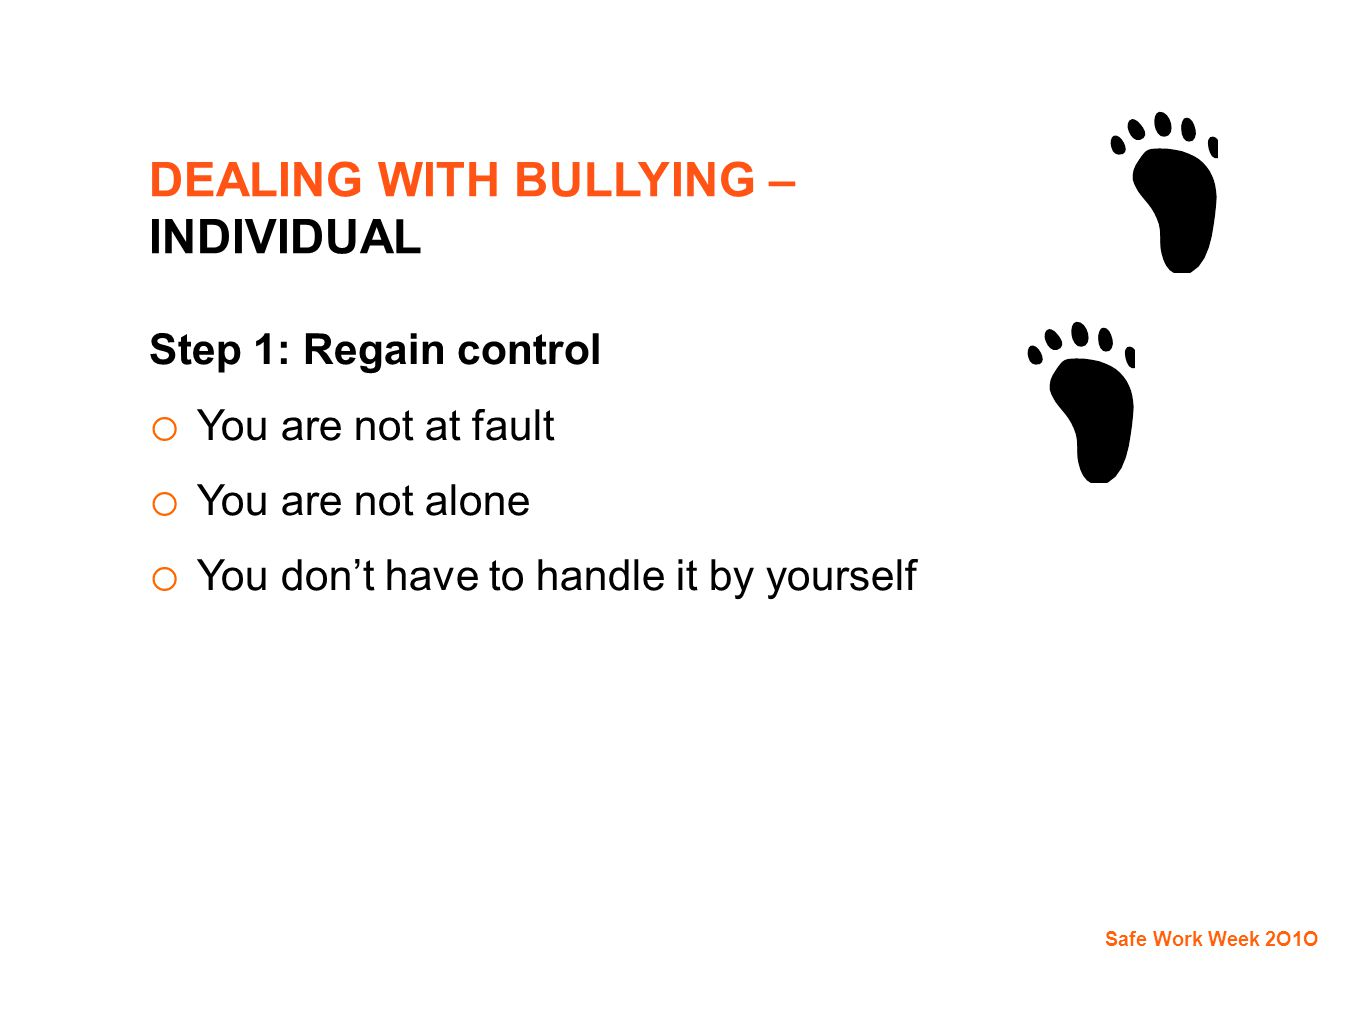 DEALING WITH BULLYING – INDIVIDUAL Step 1: Regain control o You are not at fault o You are not alone o You don't have to handle it by yourself Safe Work Week 2O1O